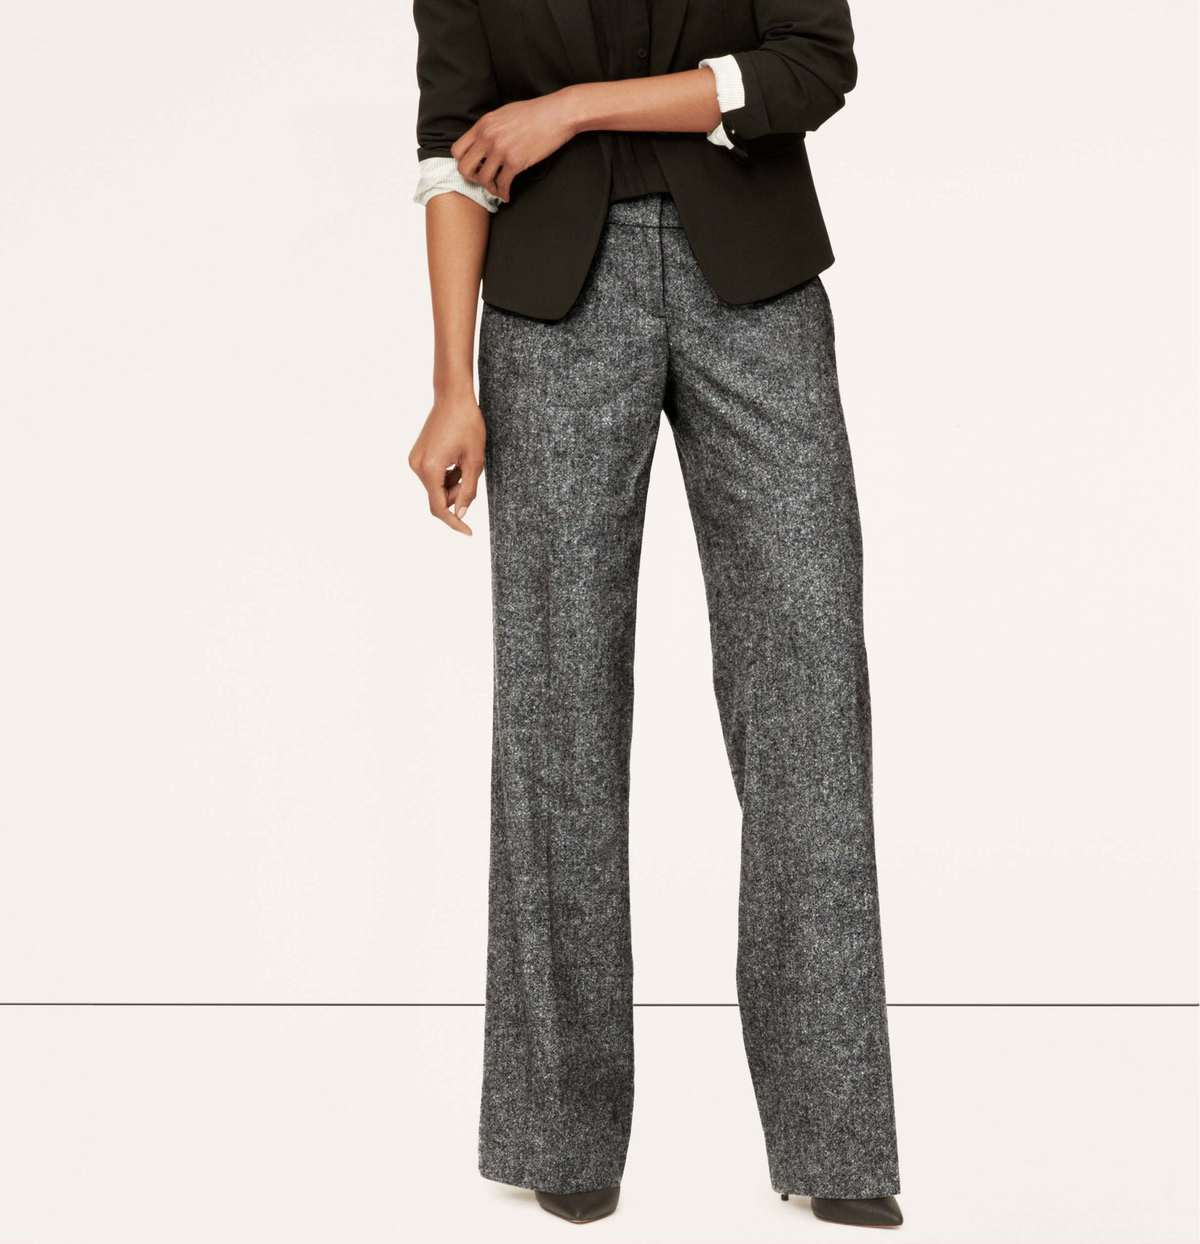 LOFT Peppered Wool Trouser review